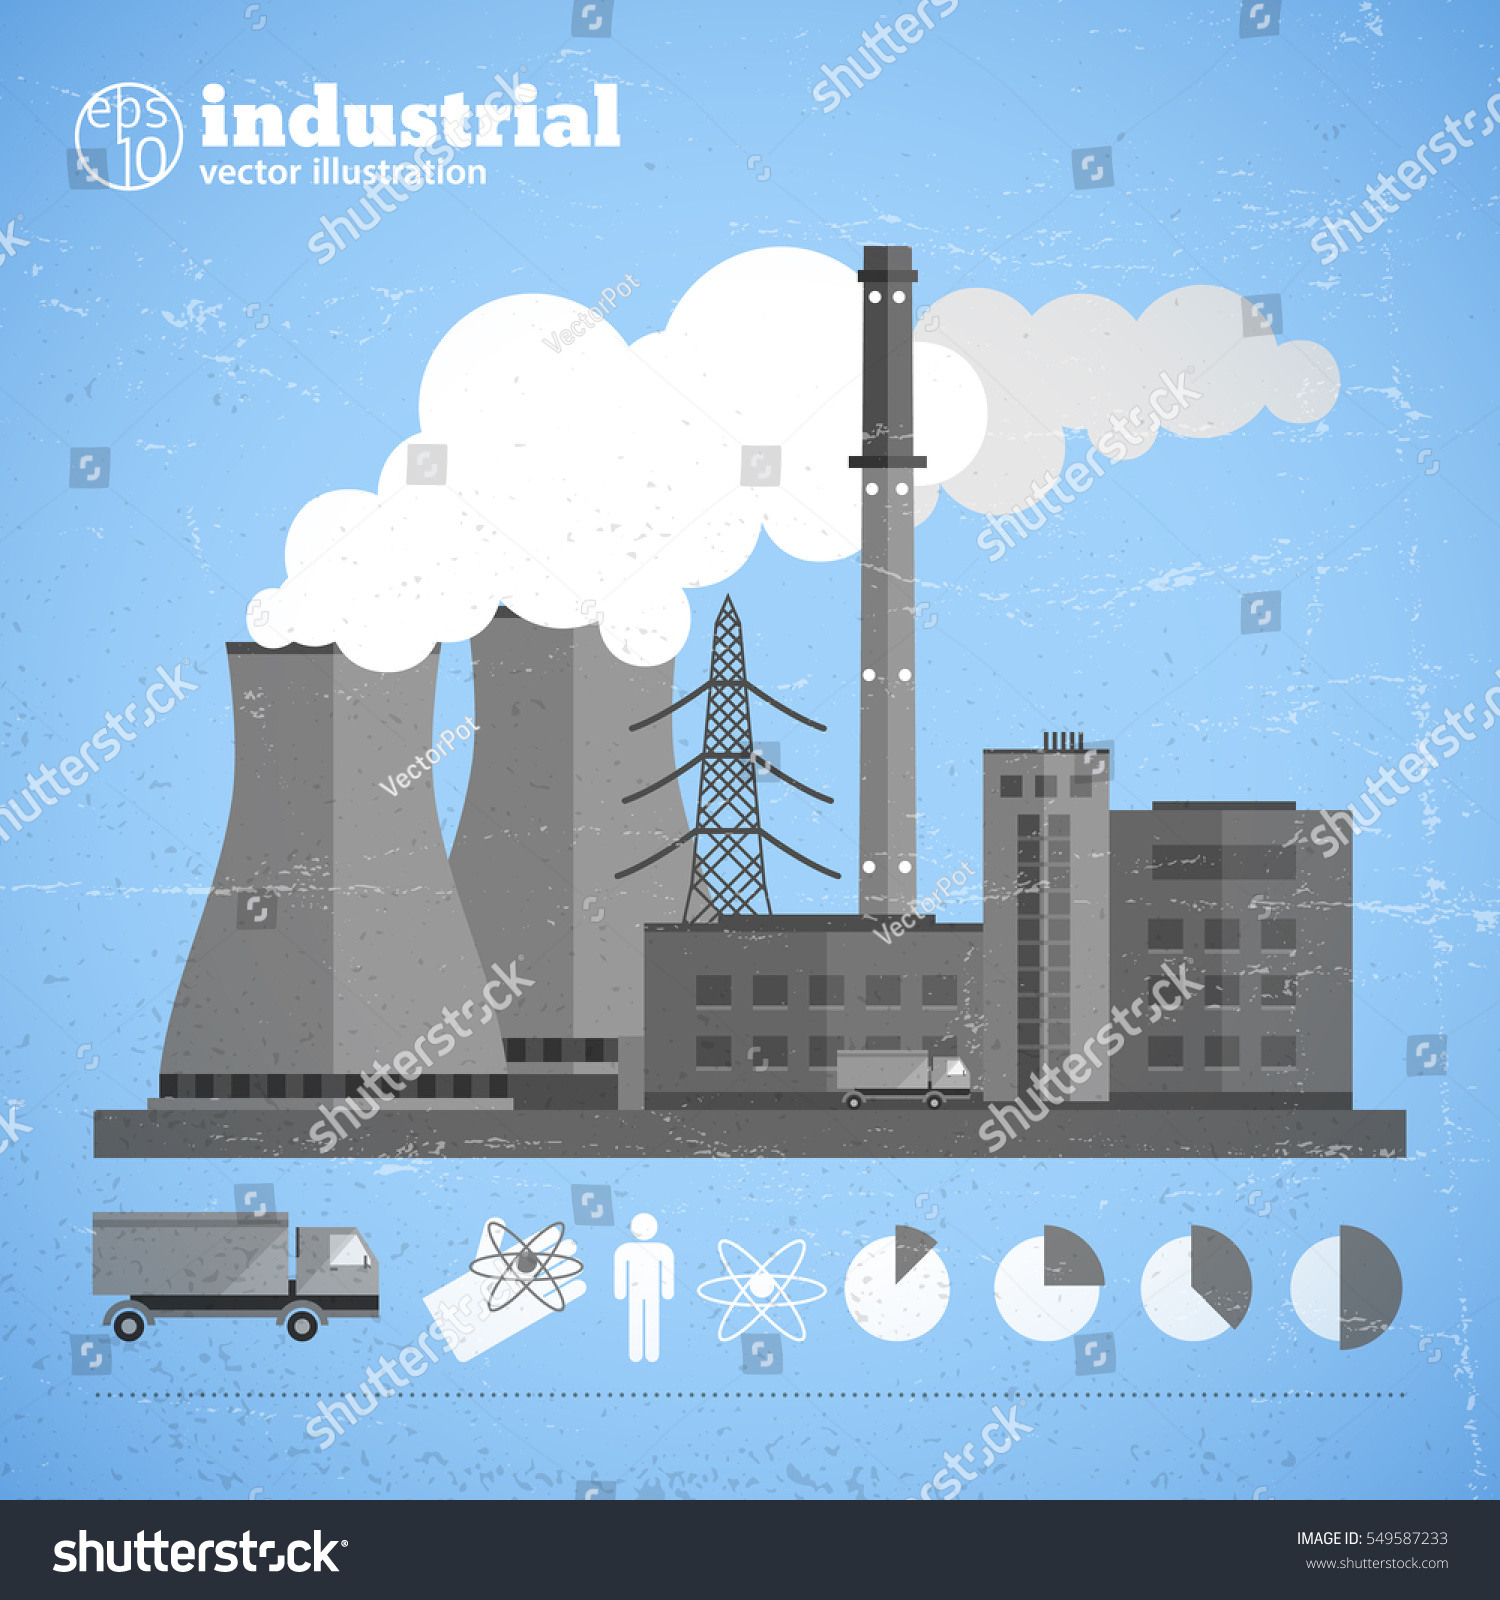 hight resolution of manufacturing plant background with building chimney harmful emissions and truck people environmental diagrams icons isolated vector